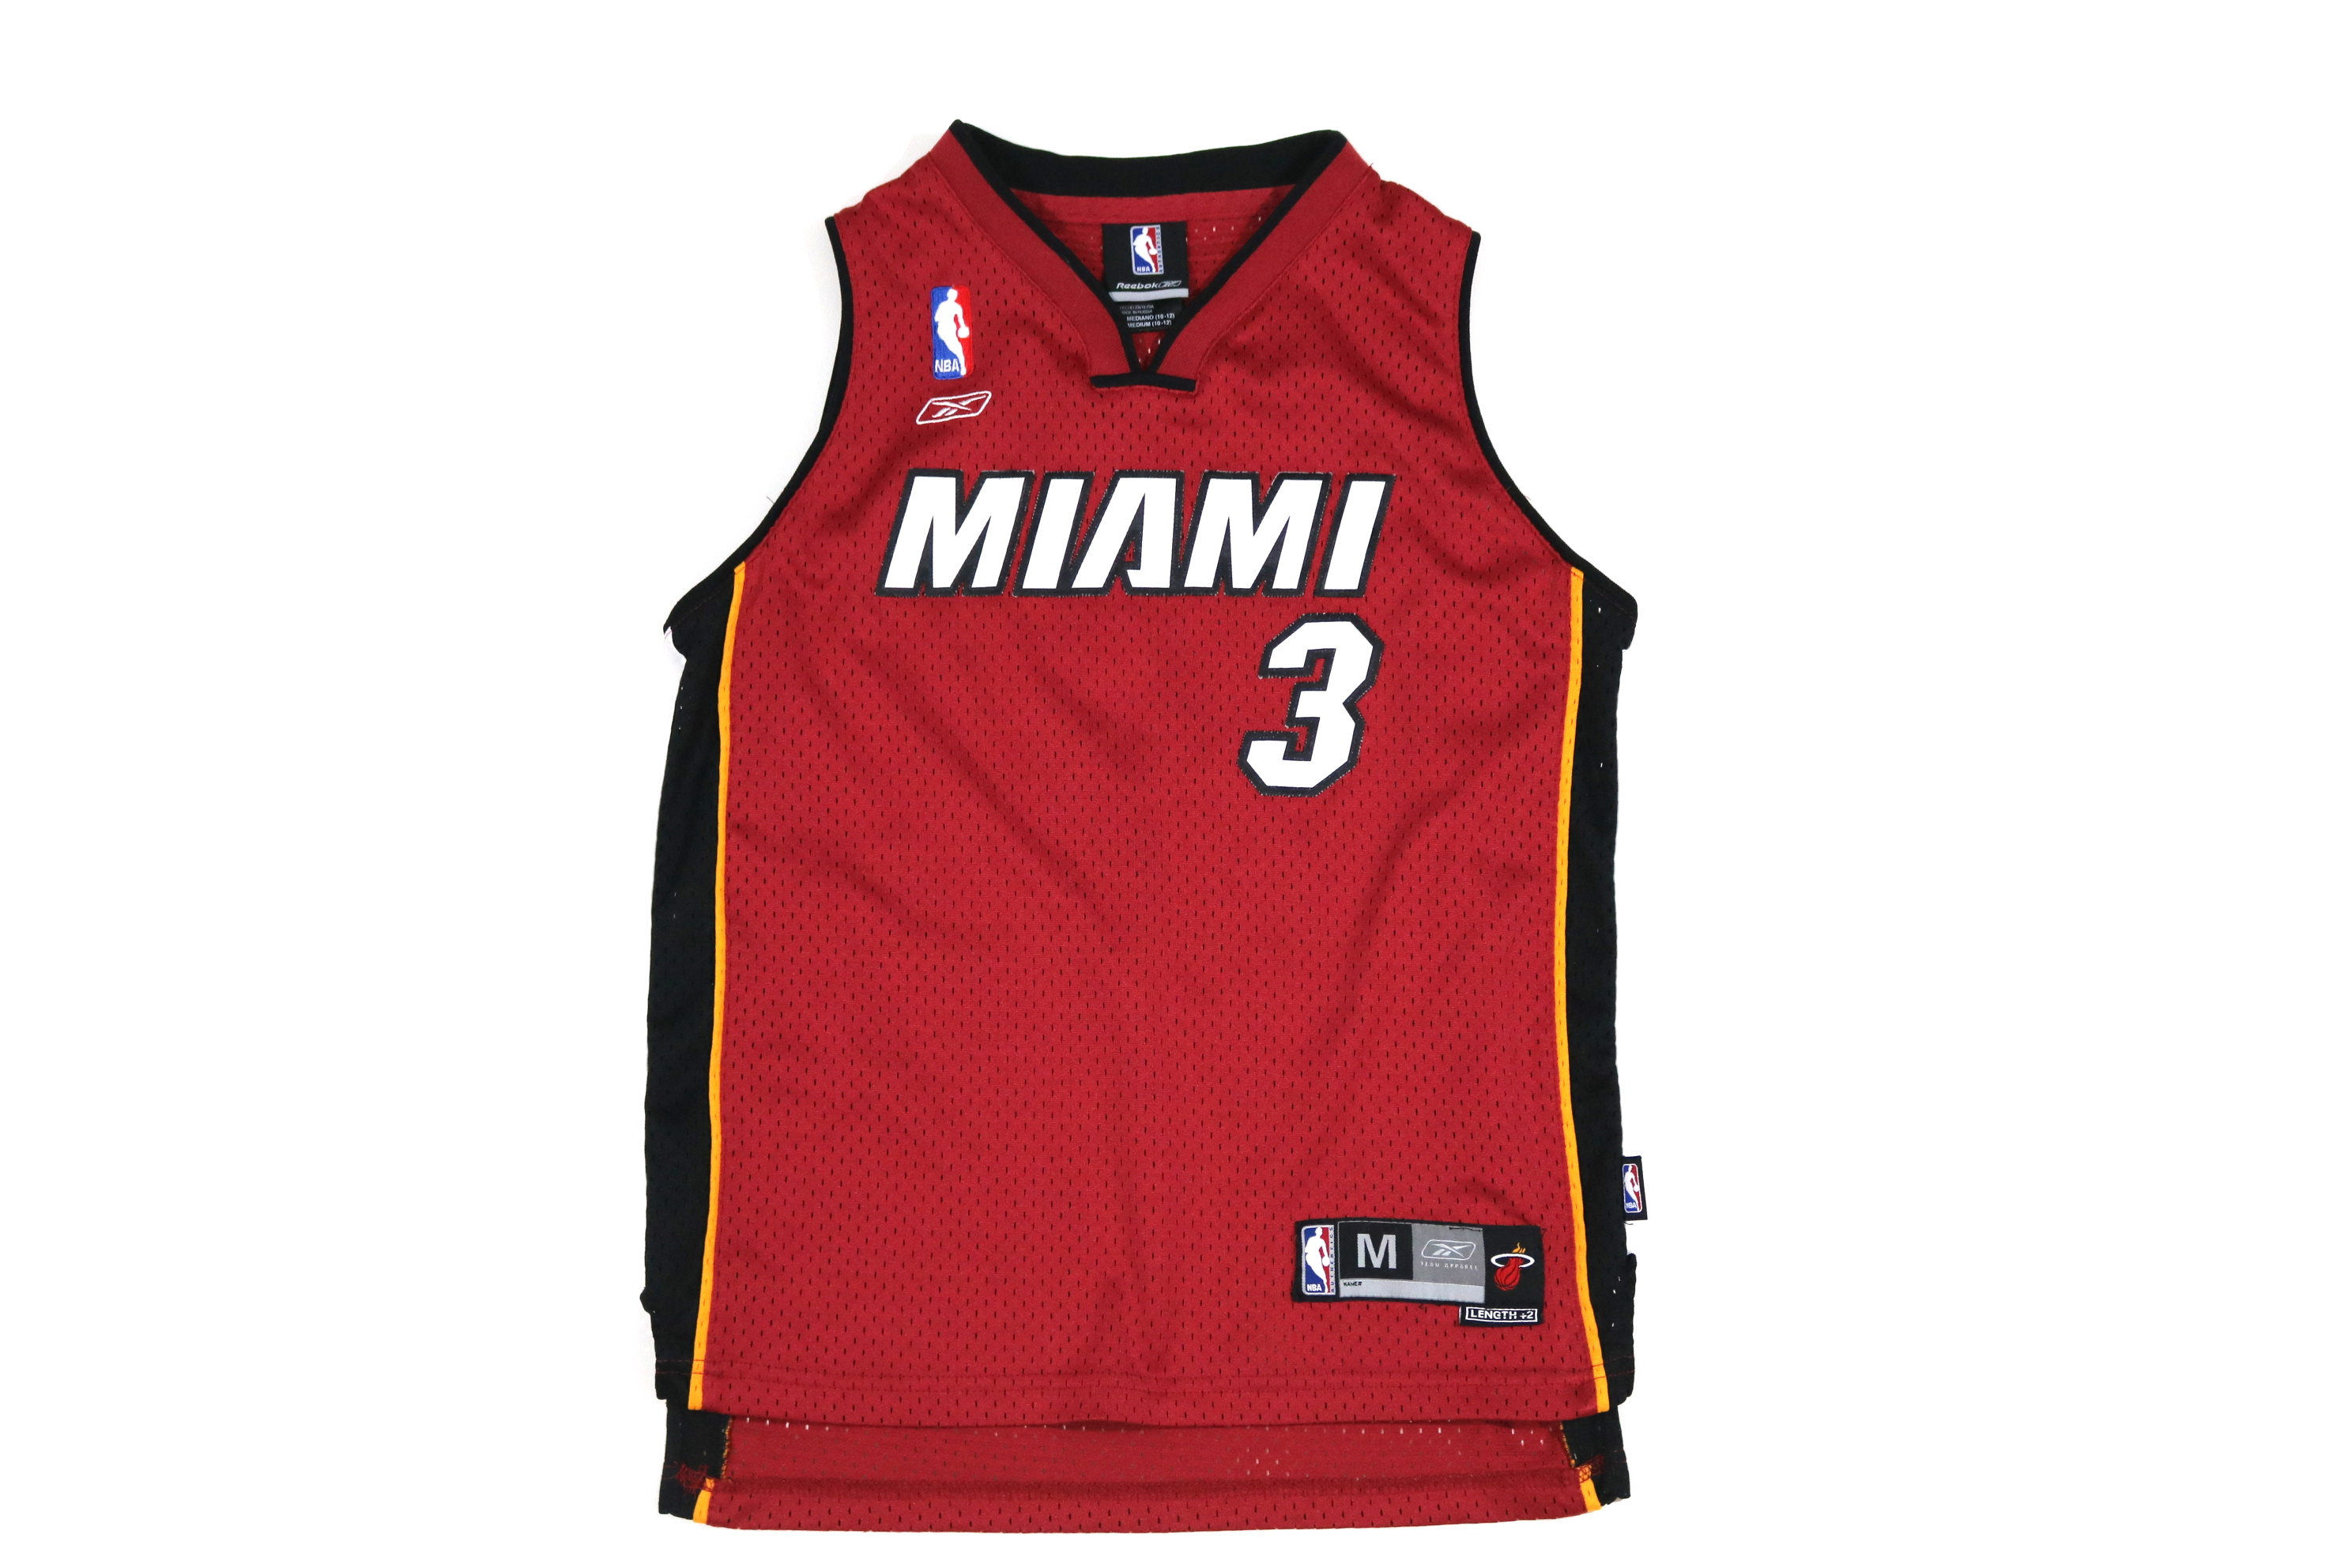 aa9c081c5 Vintage NBA Miami Heat Reebok Dwyane Wade Jersey  3 Youth Medium